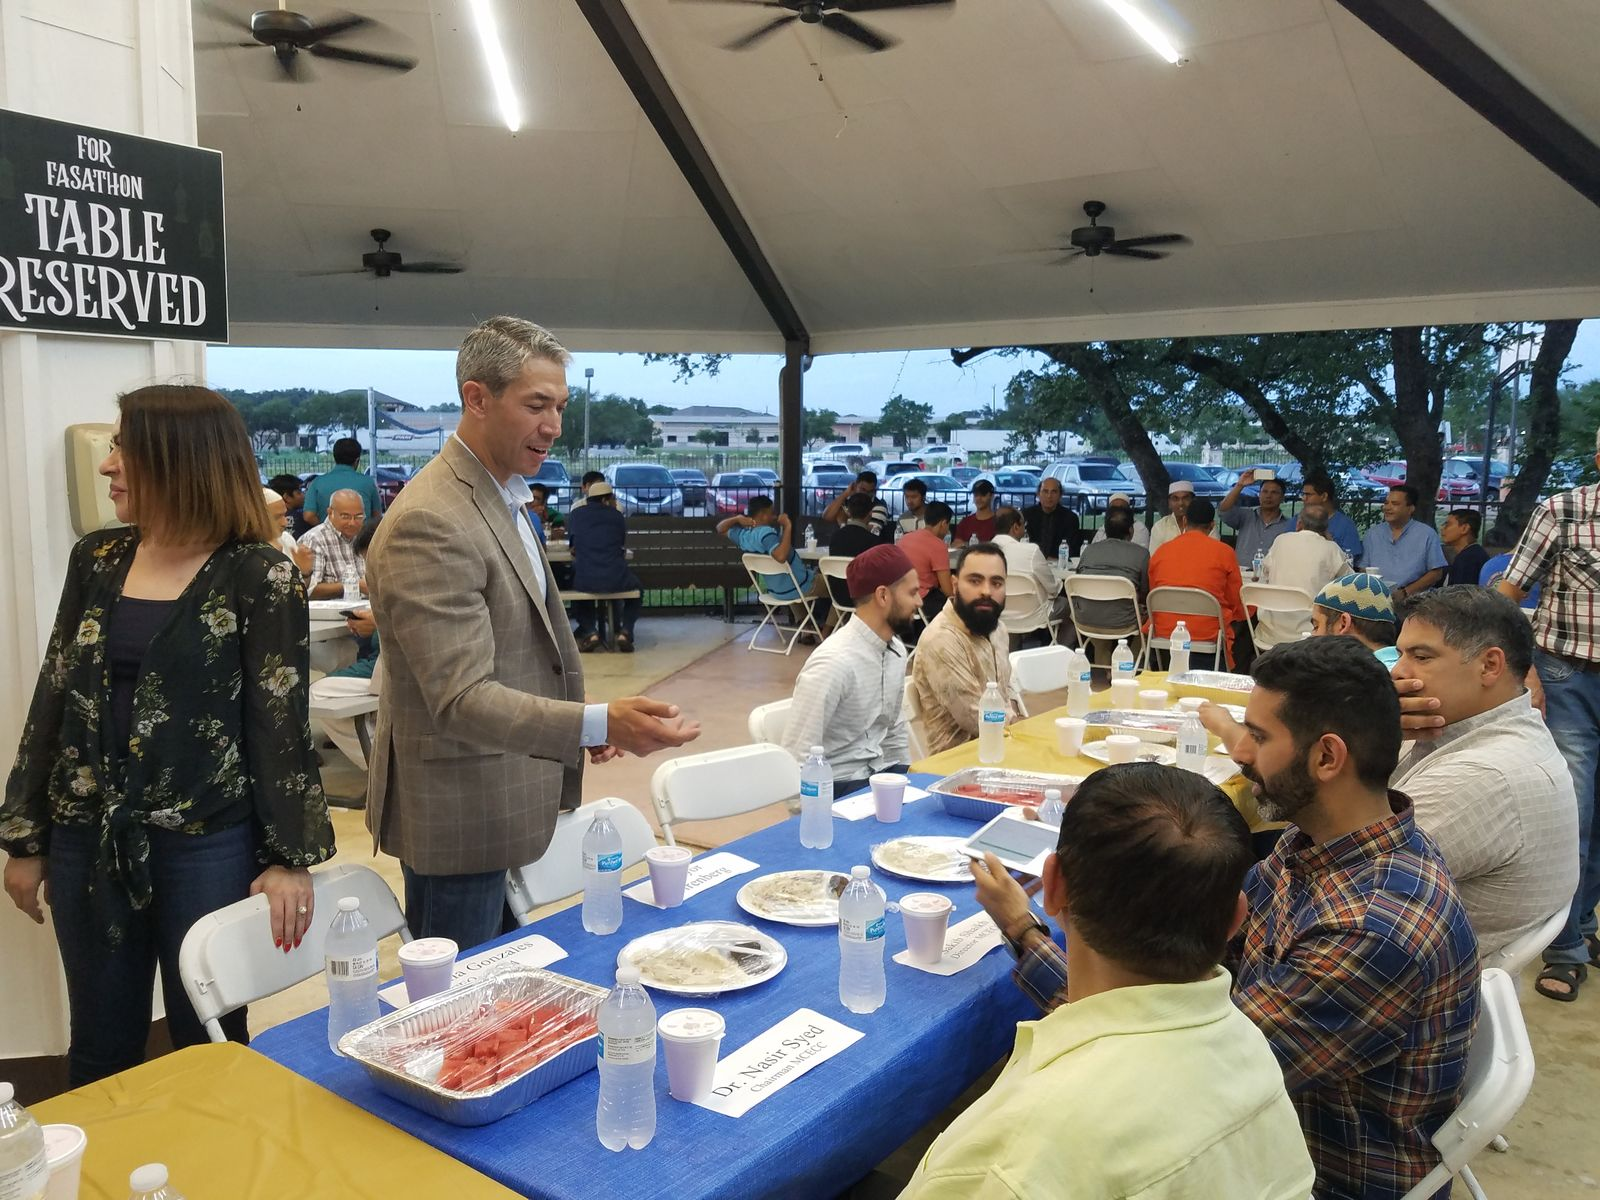 San Antonio Mayor Ron Nirenberg joins the local Muslim community at the recent Fastathon at the Muslim Children Education and Civic Center. (SBG San Antonio)